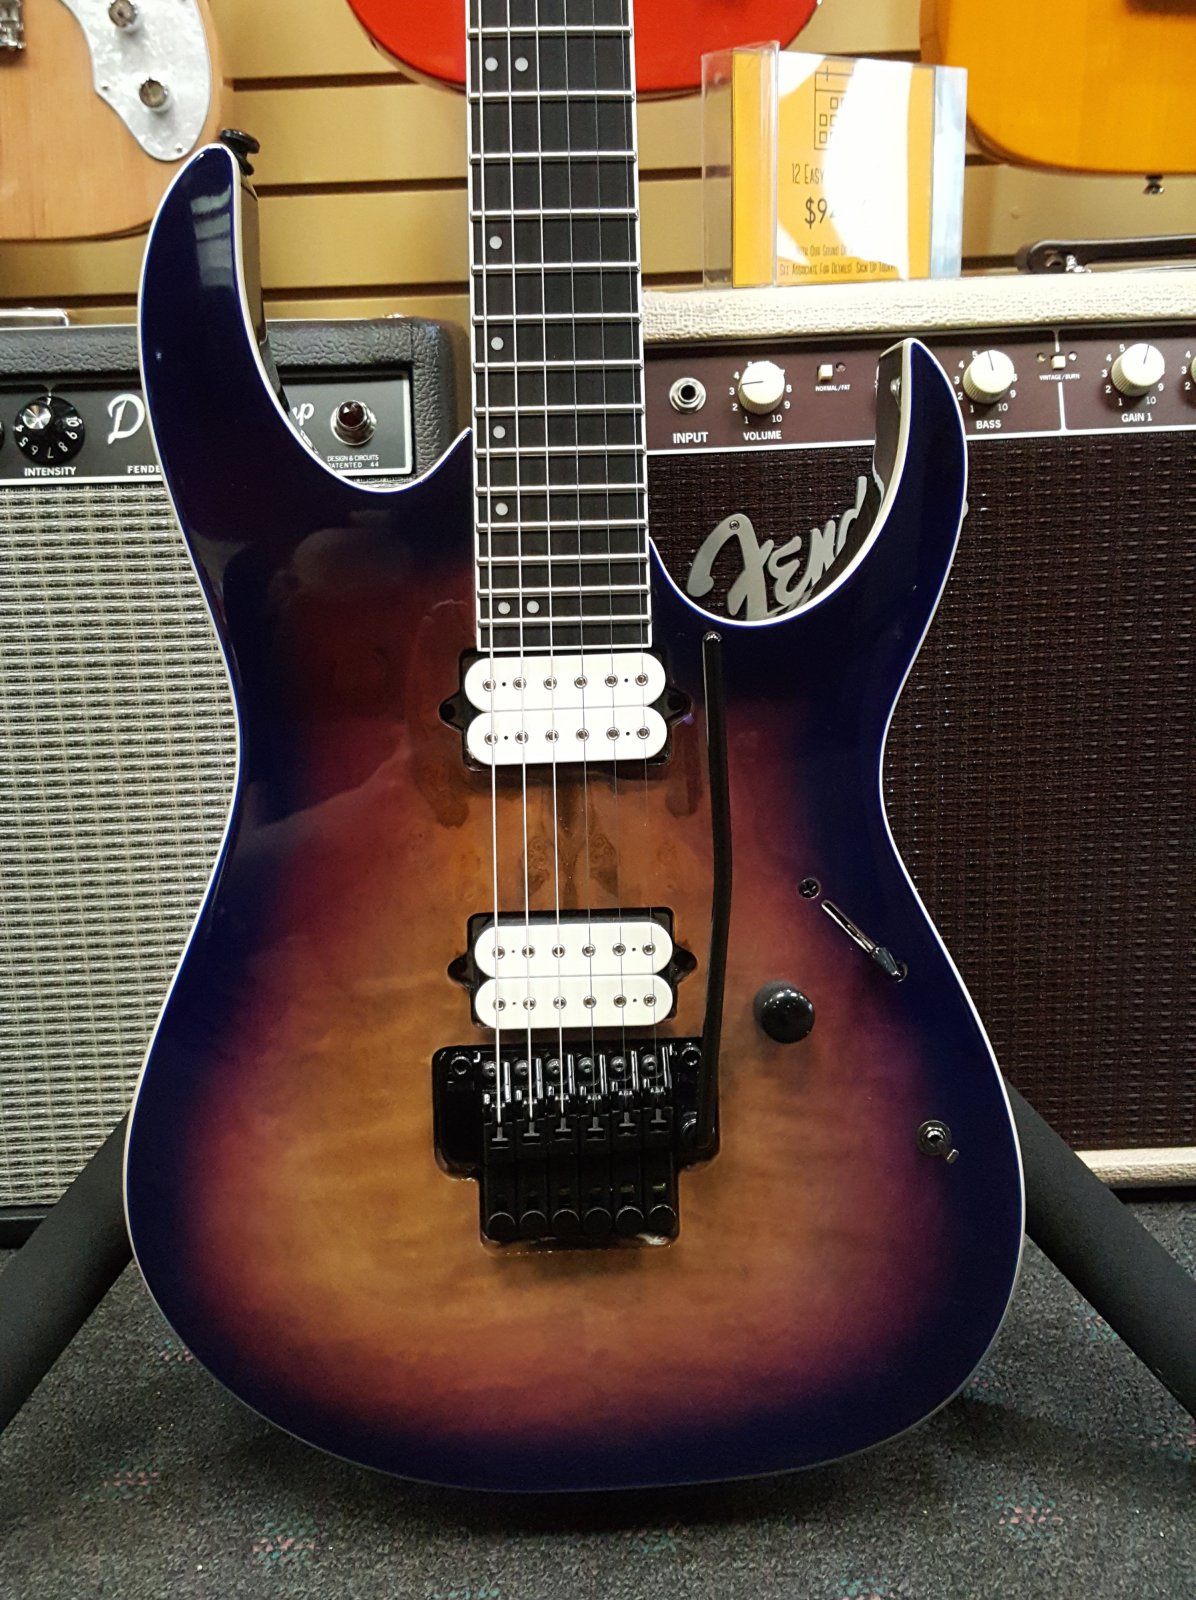 Ibanez RGIX6DLBSNB Iron Label 6str Electric Guitar - Supernova Burst